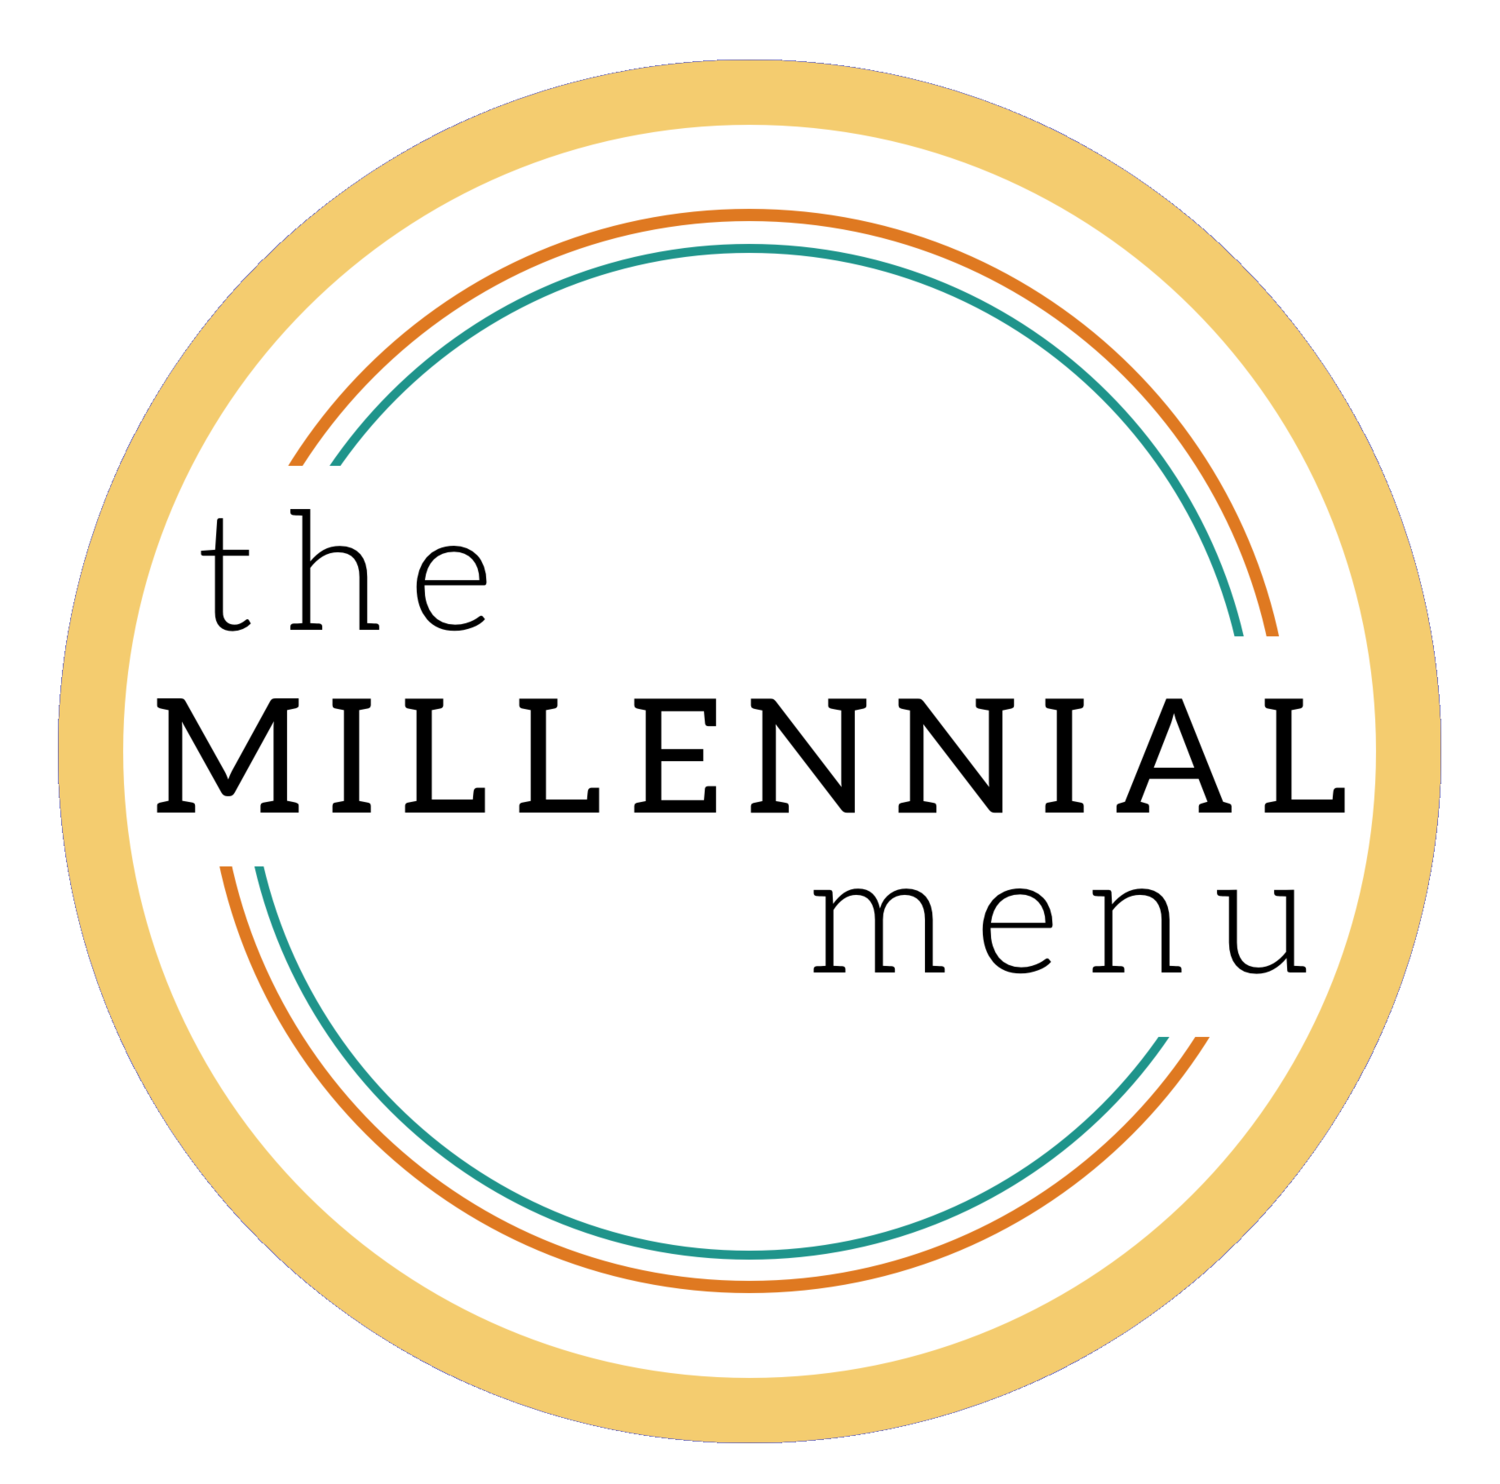 The Millennial Menu